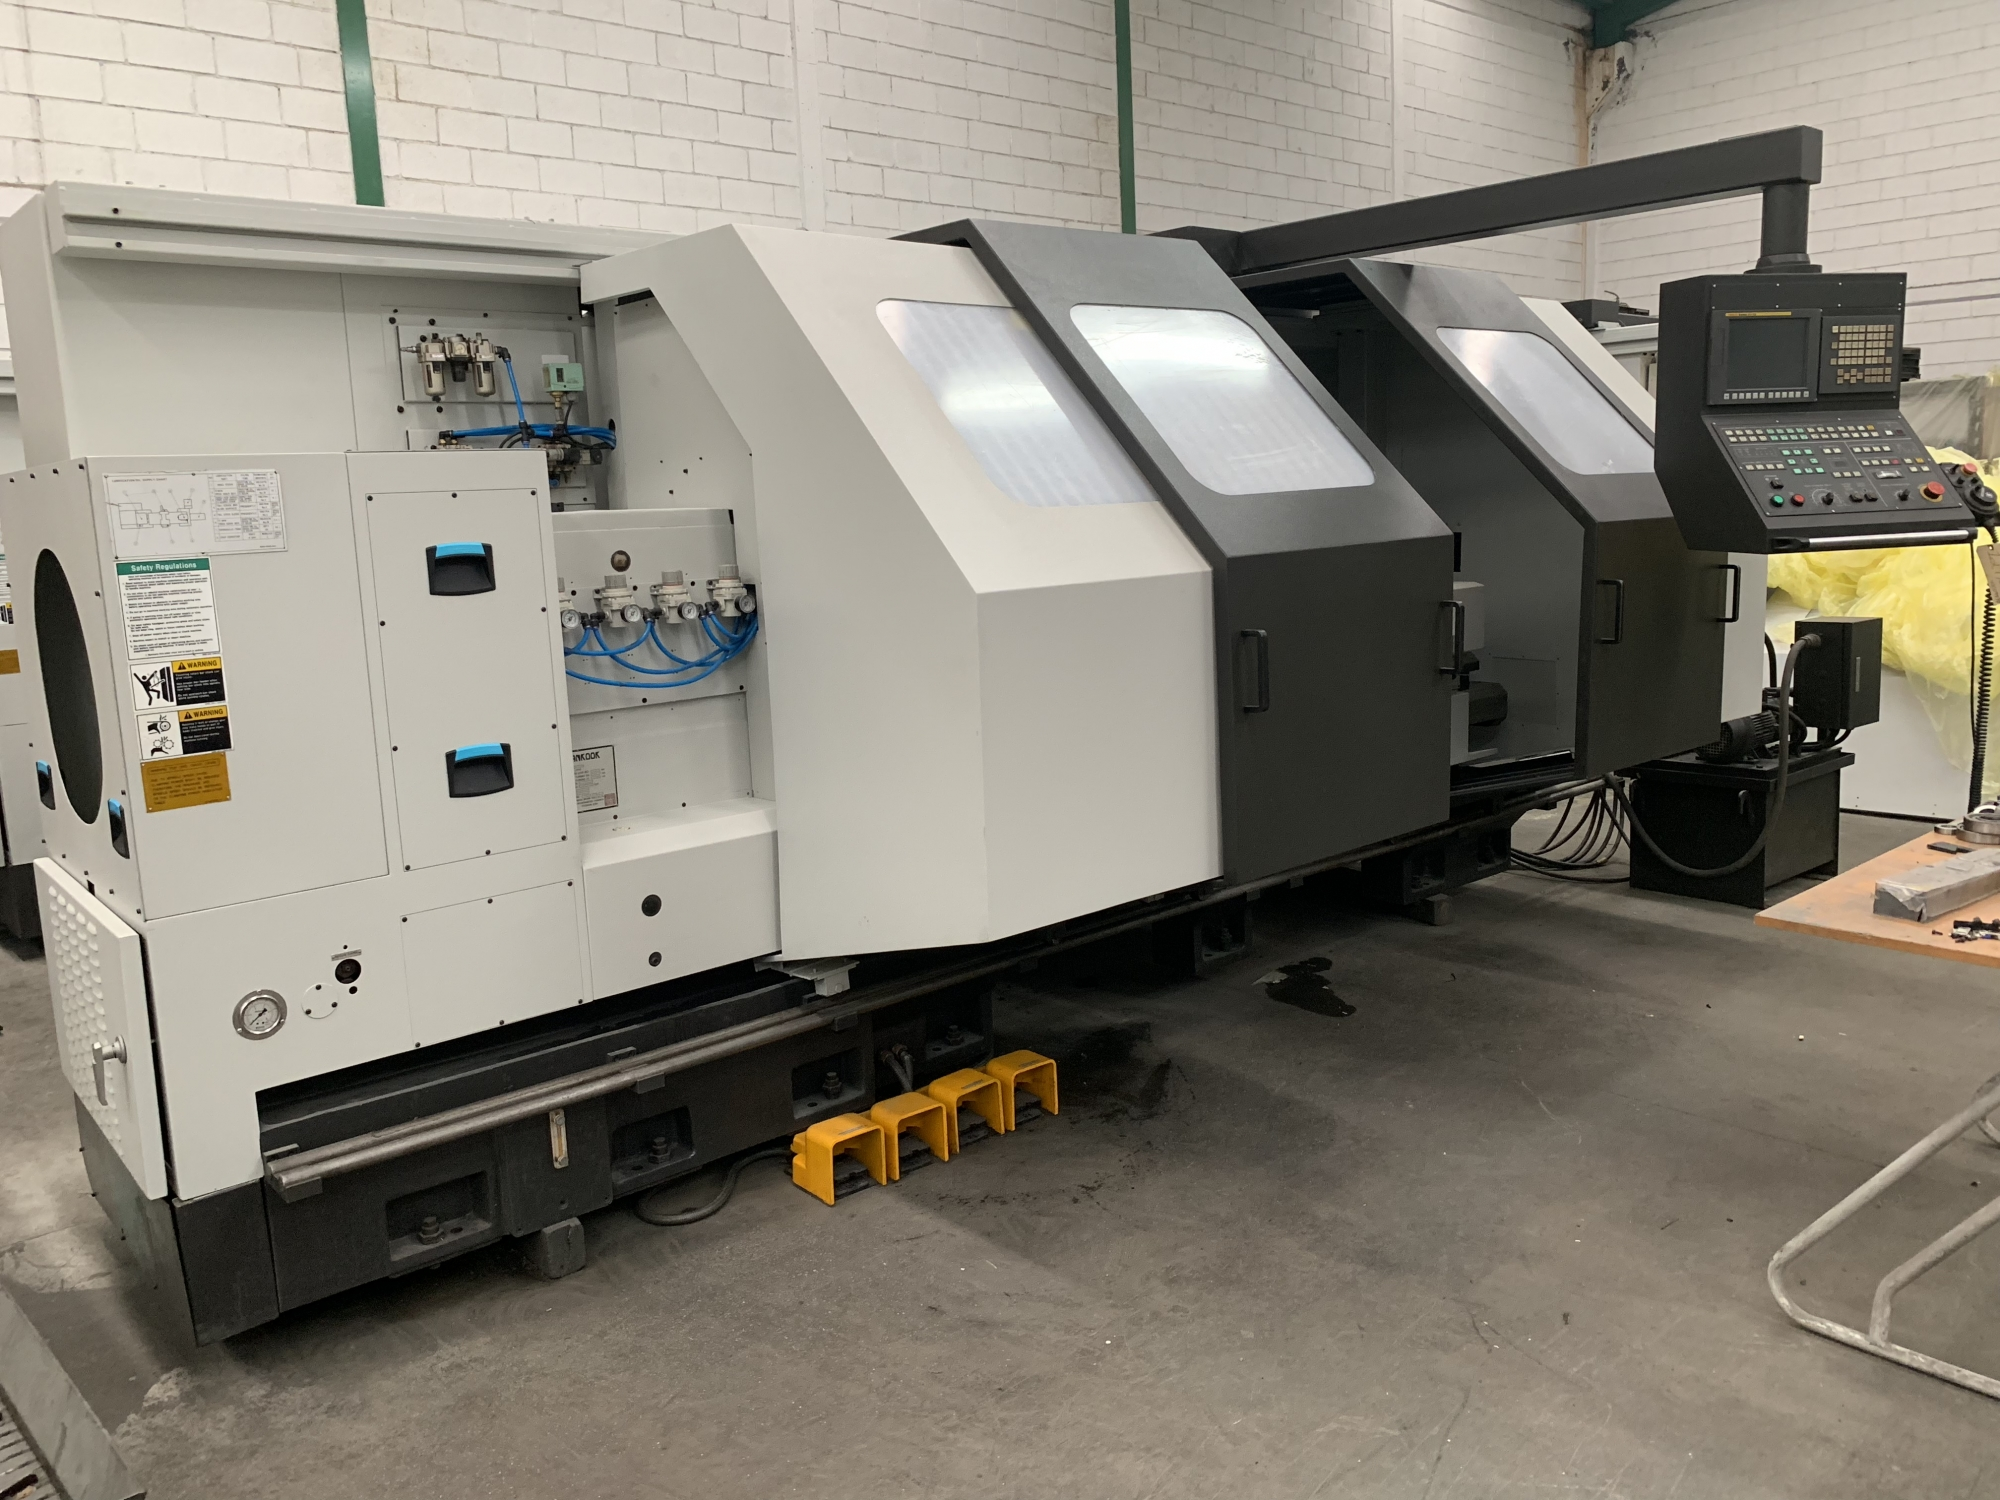 2012 HANKOOK Proturn 60B - CNC Horizontal Lathe